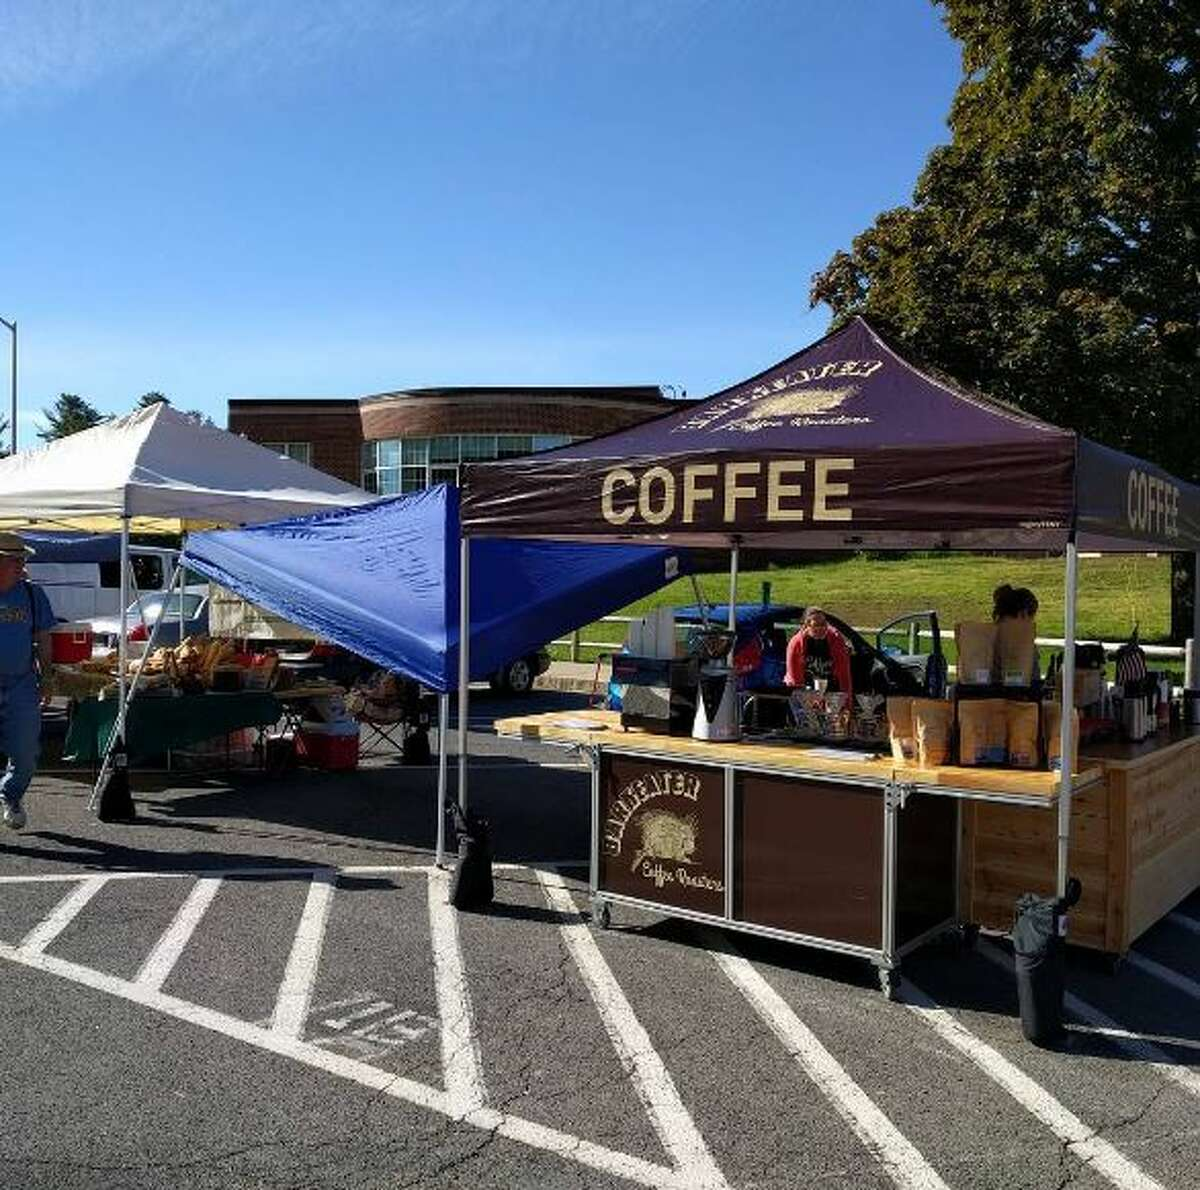 Barkeater Coffee Roasters, now Brewtus Roasting, has been selling its coffee at the Delmar Farmers Market and has plans to move to Delmar.